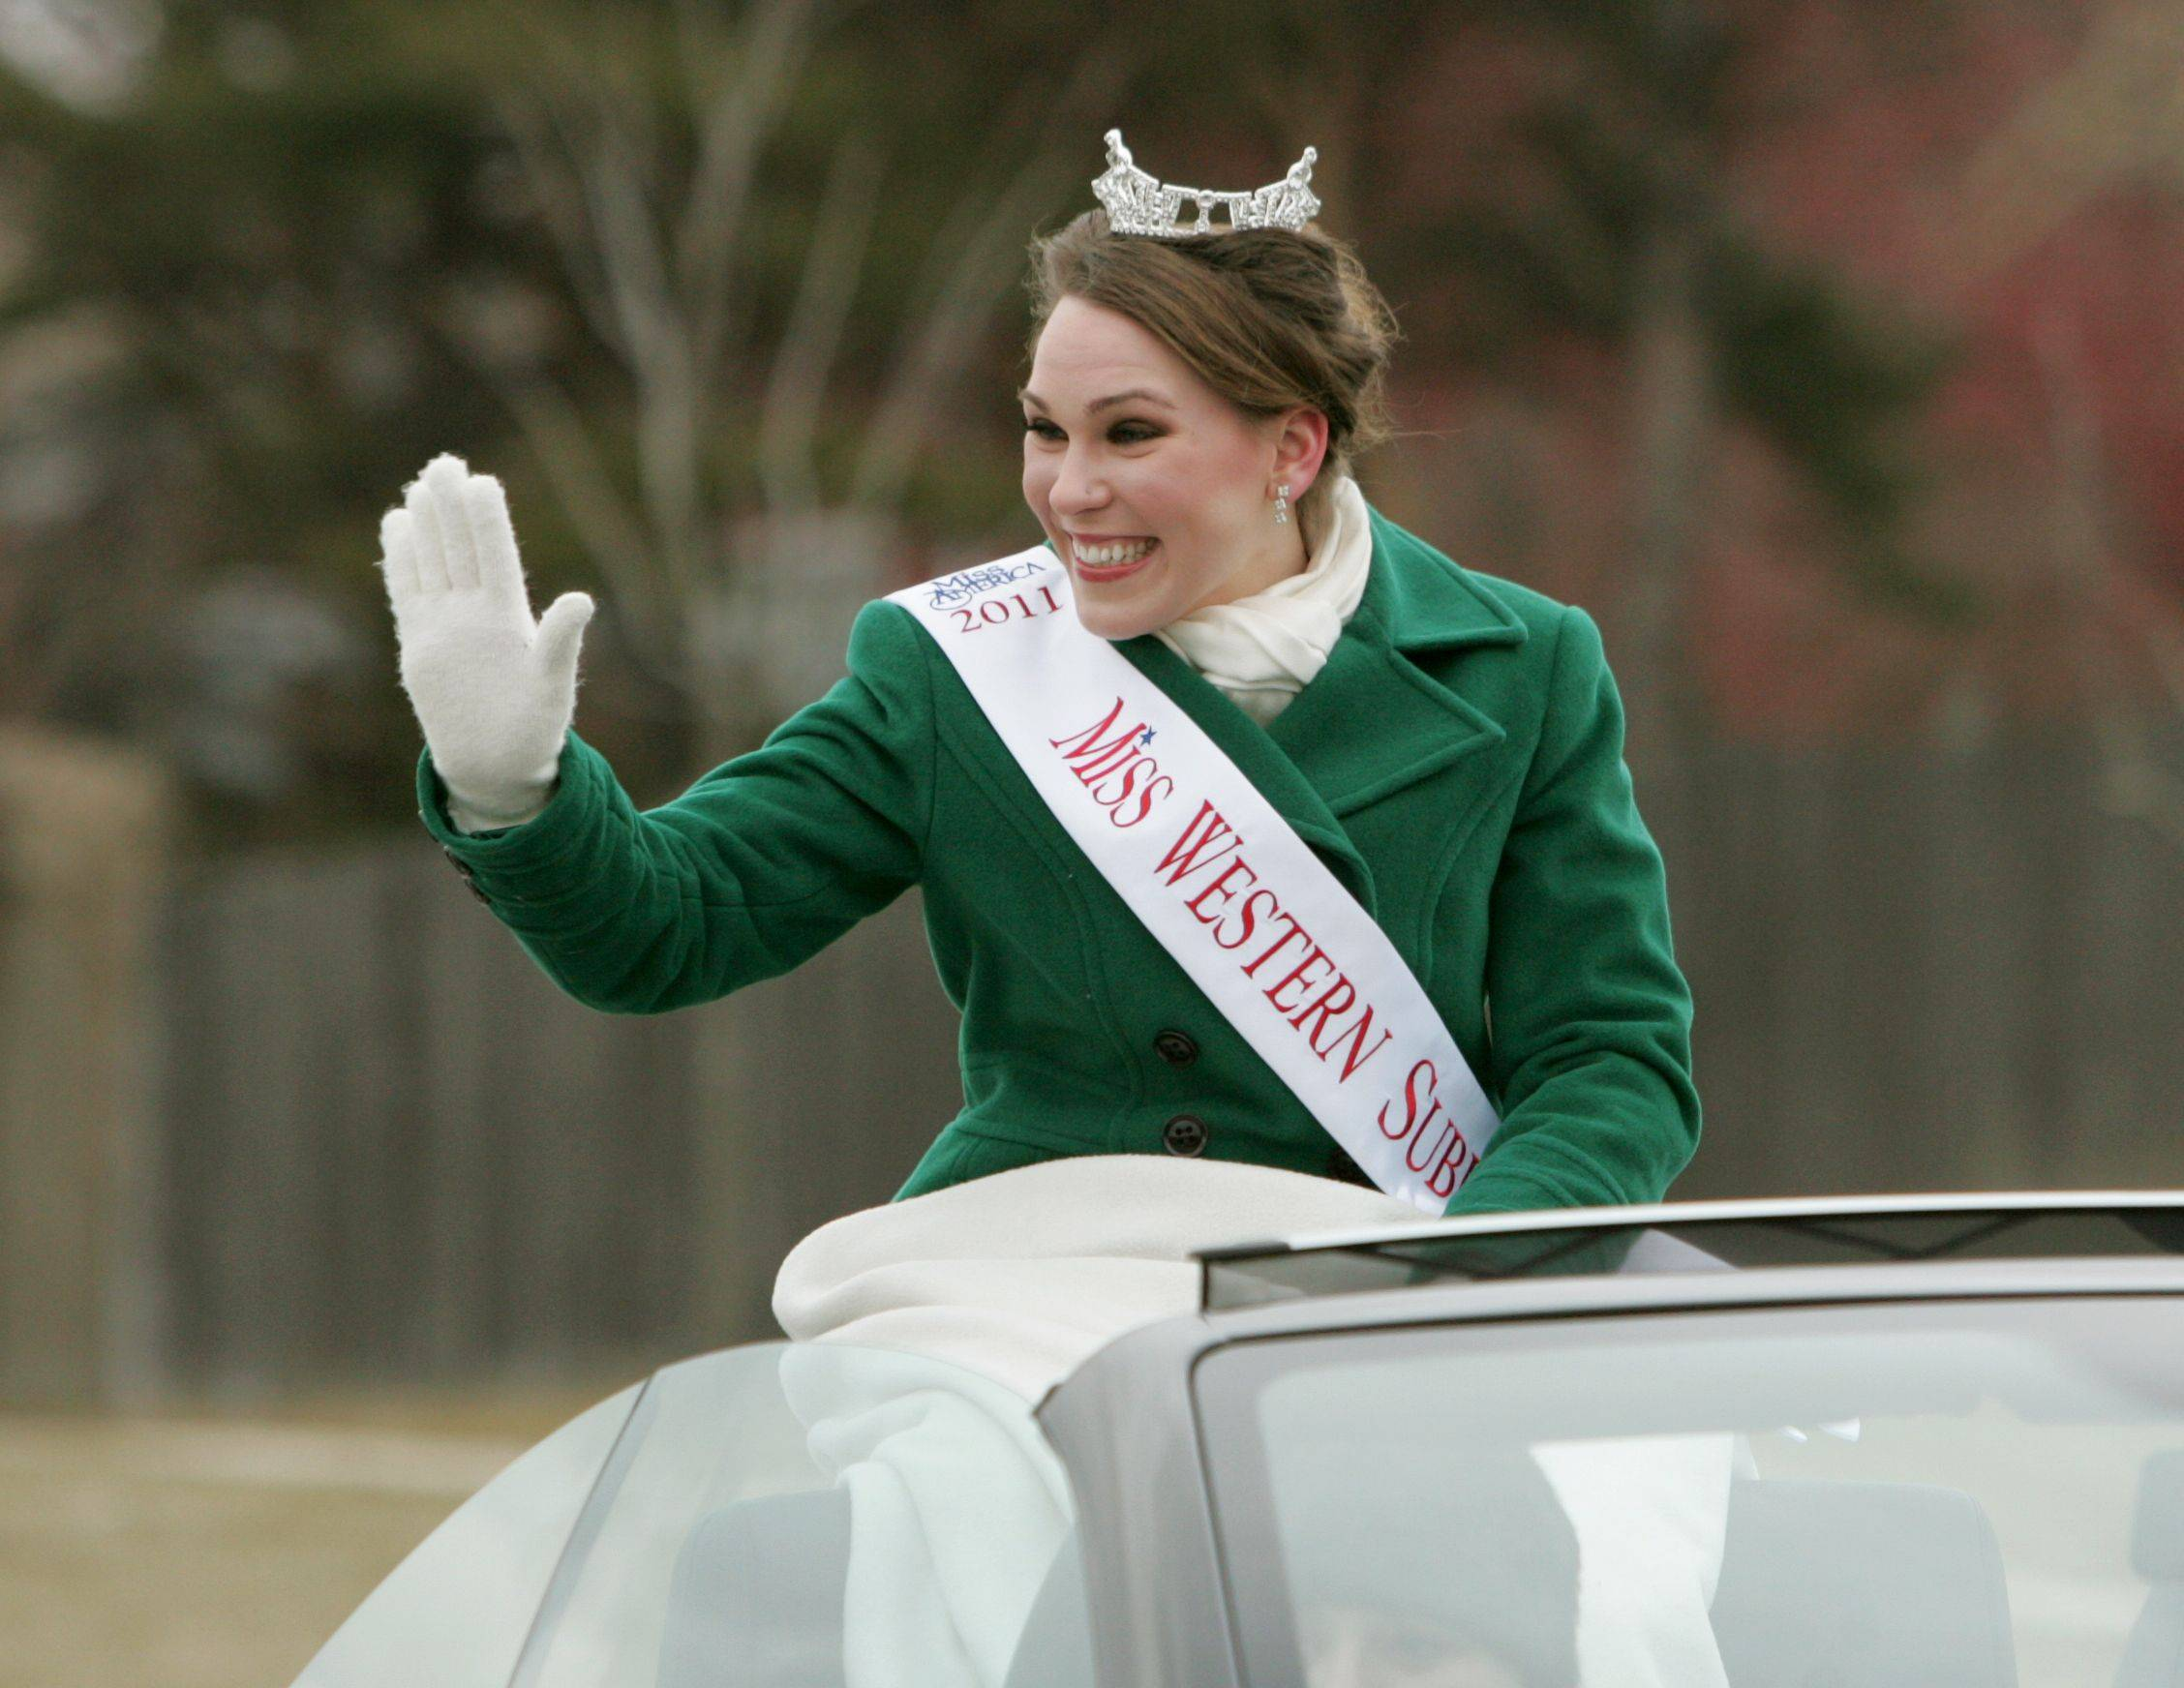 Miss Western Suburbs Samantha Breske of Joliet waves to the crowd during the annual St. Patrick's Day Parade in downtown Naperville.